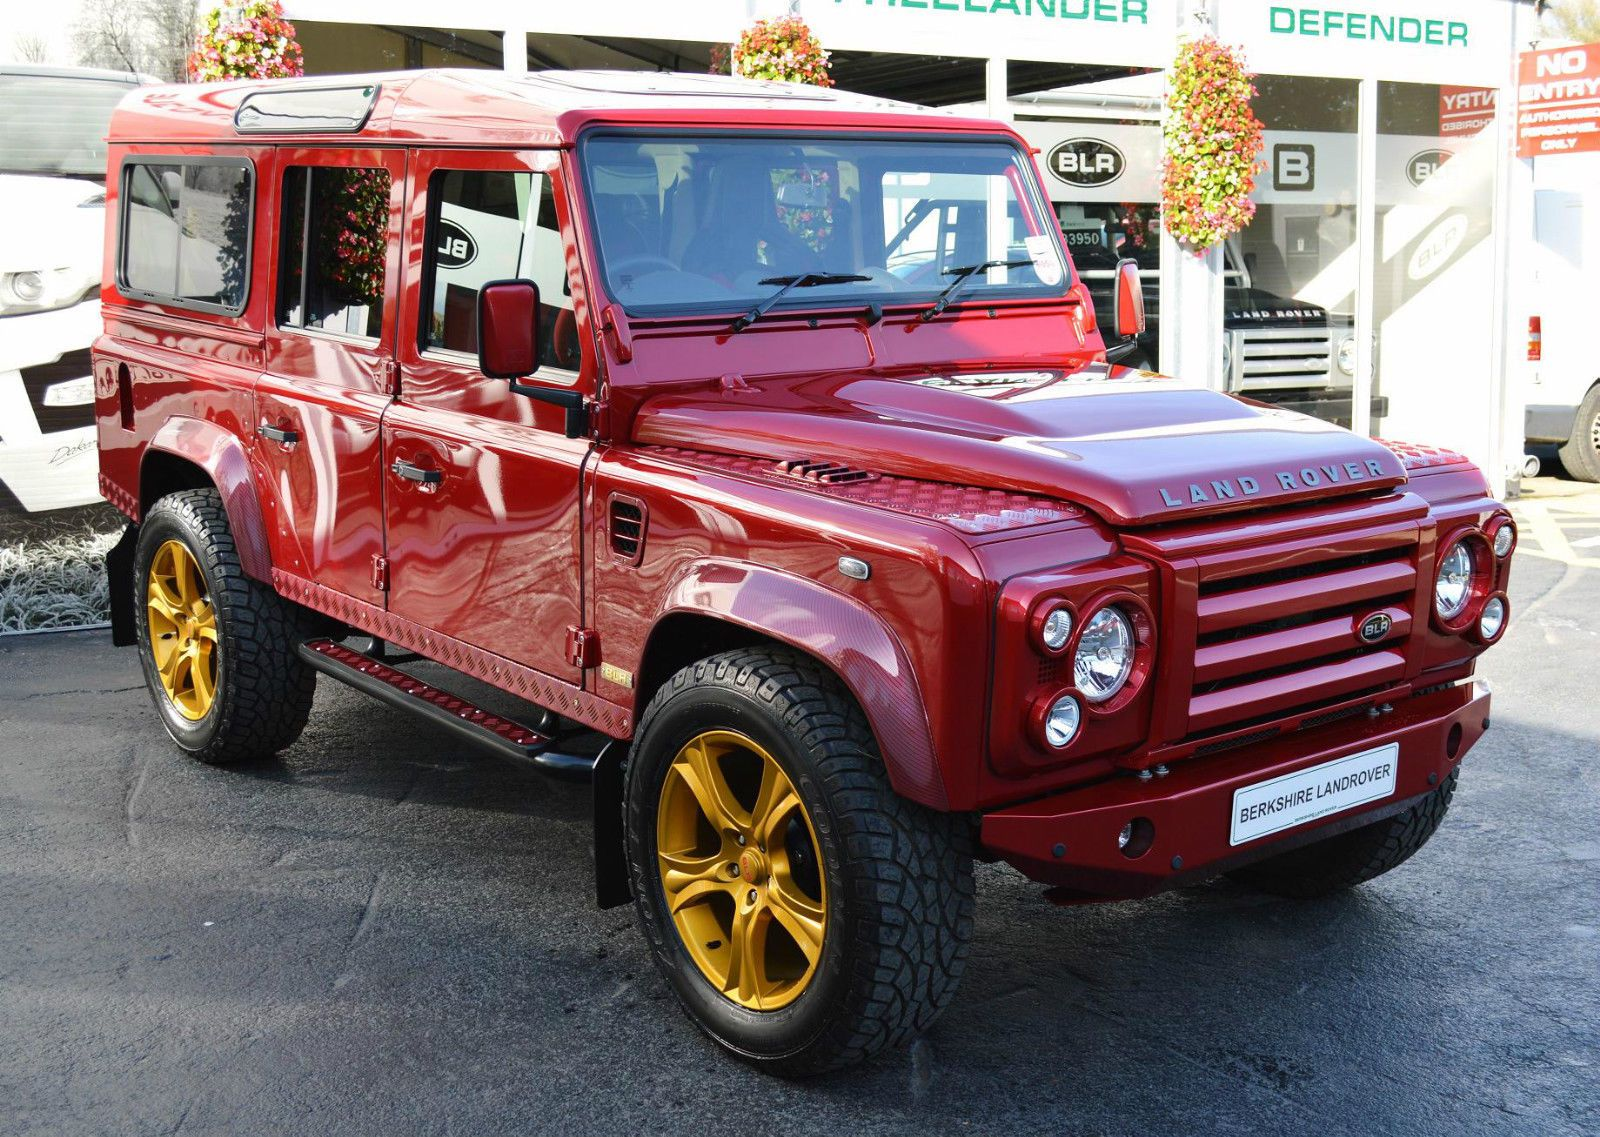 2013 Land Rover Defender 110 2 2tdci Automatic Land Rover Defender Land Rover Land Rover Defender 110